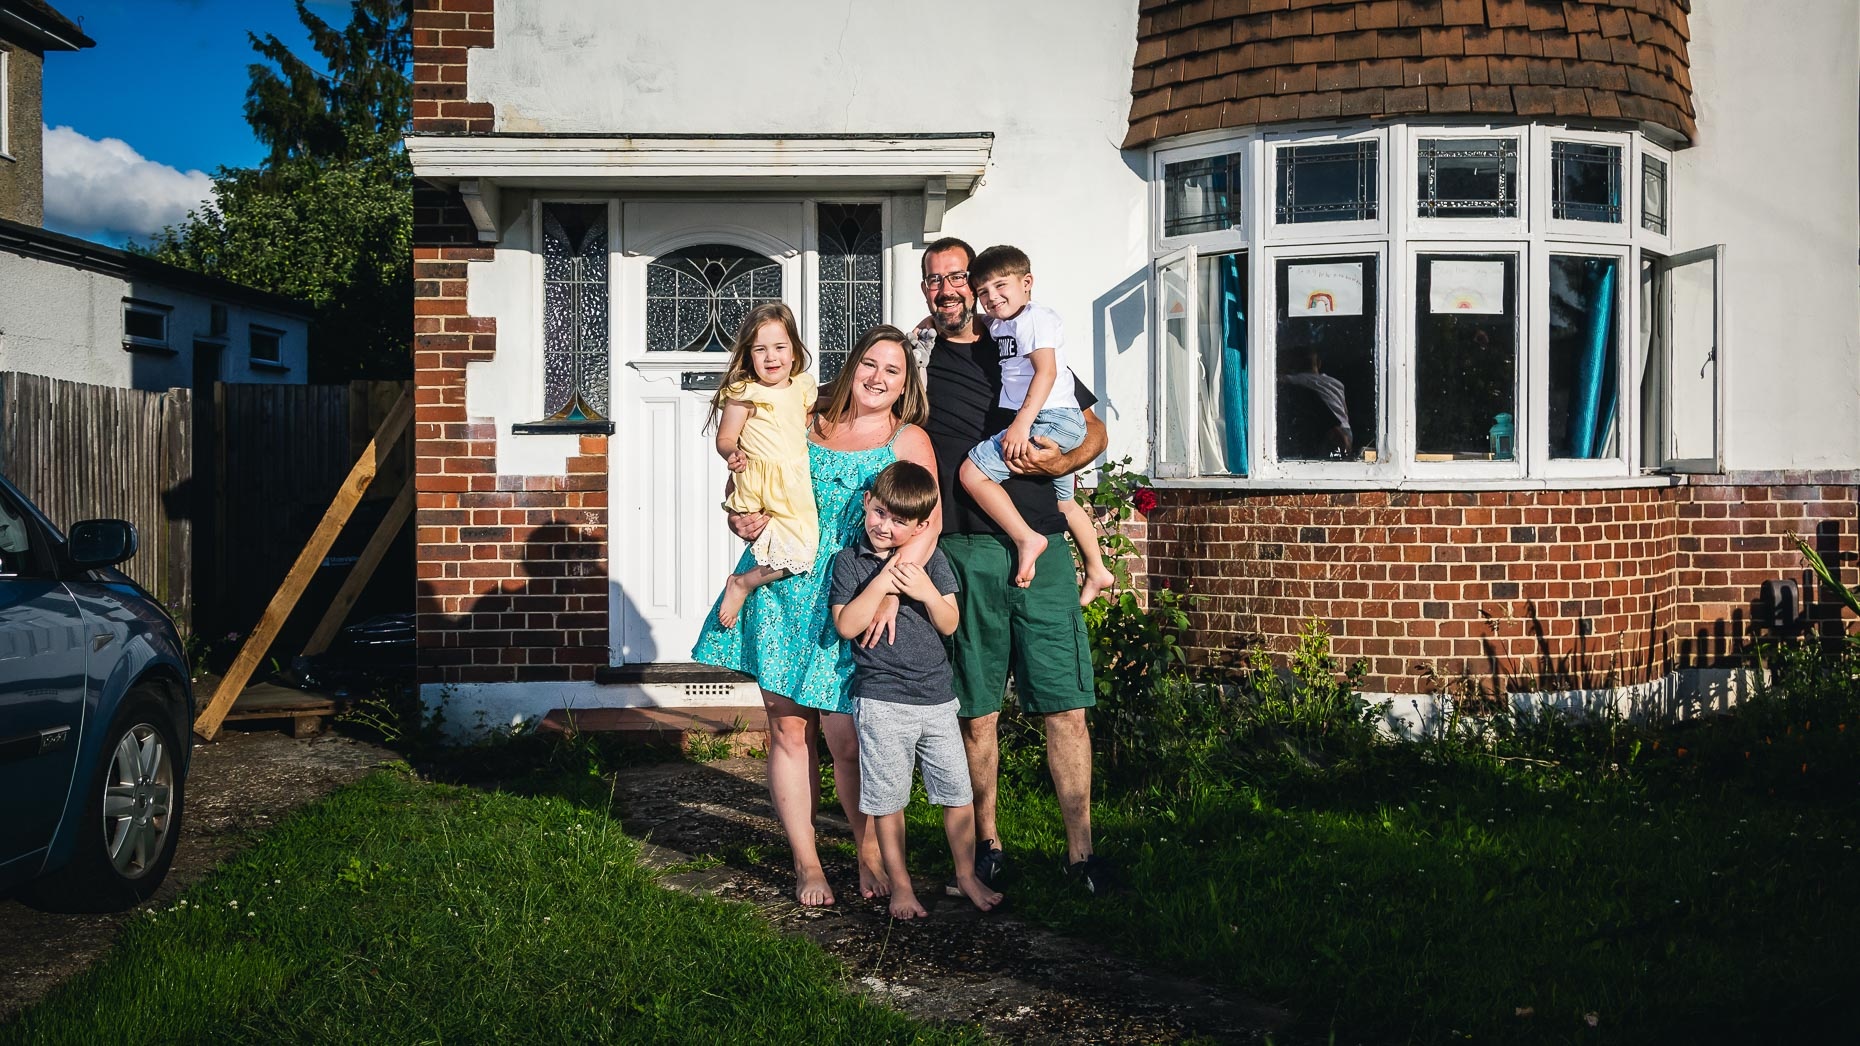 Ashtead Doorstep Portraits 51